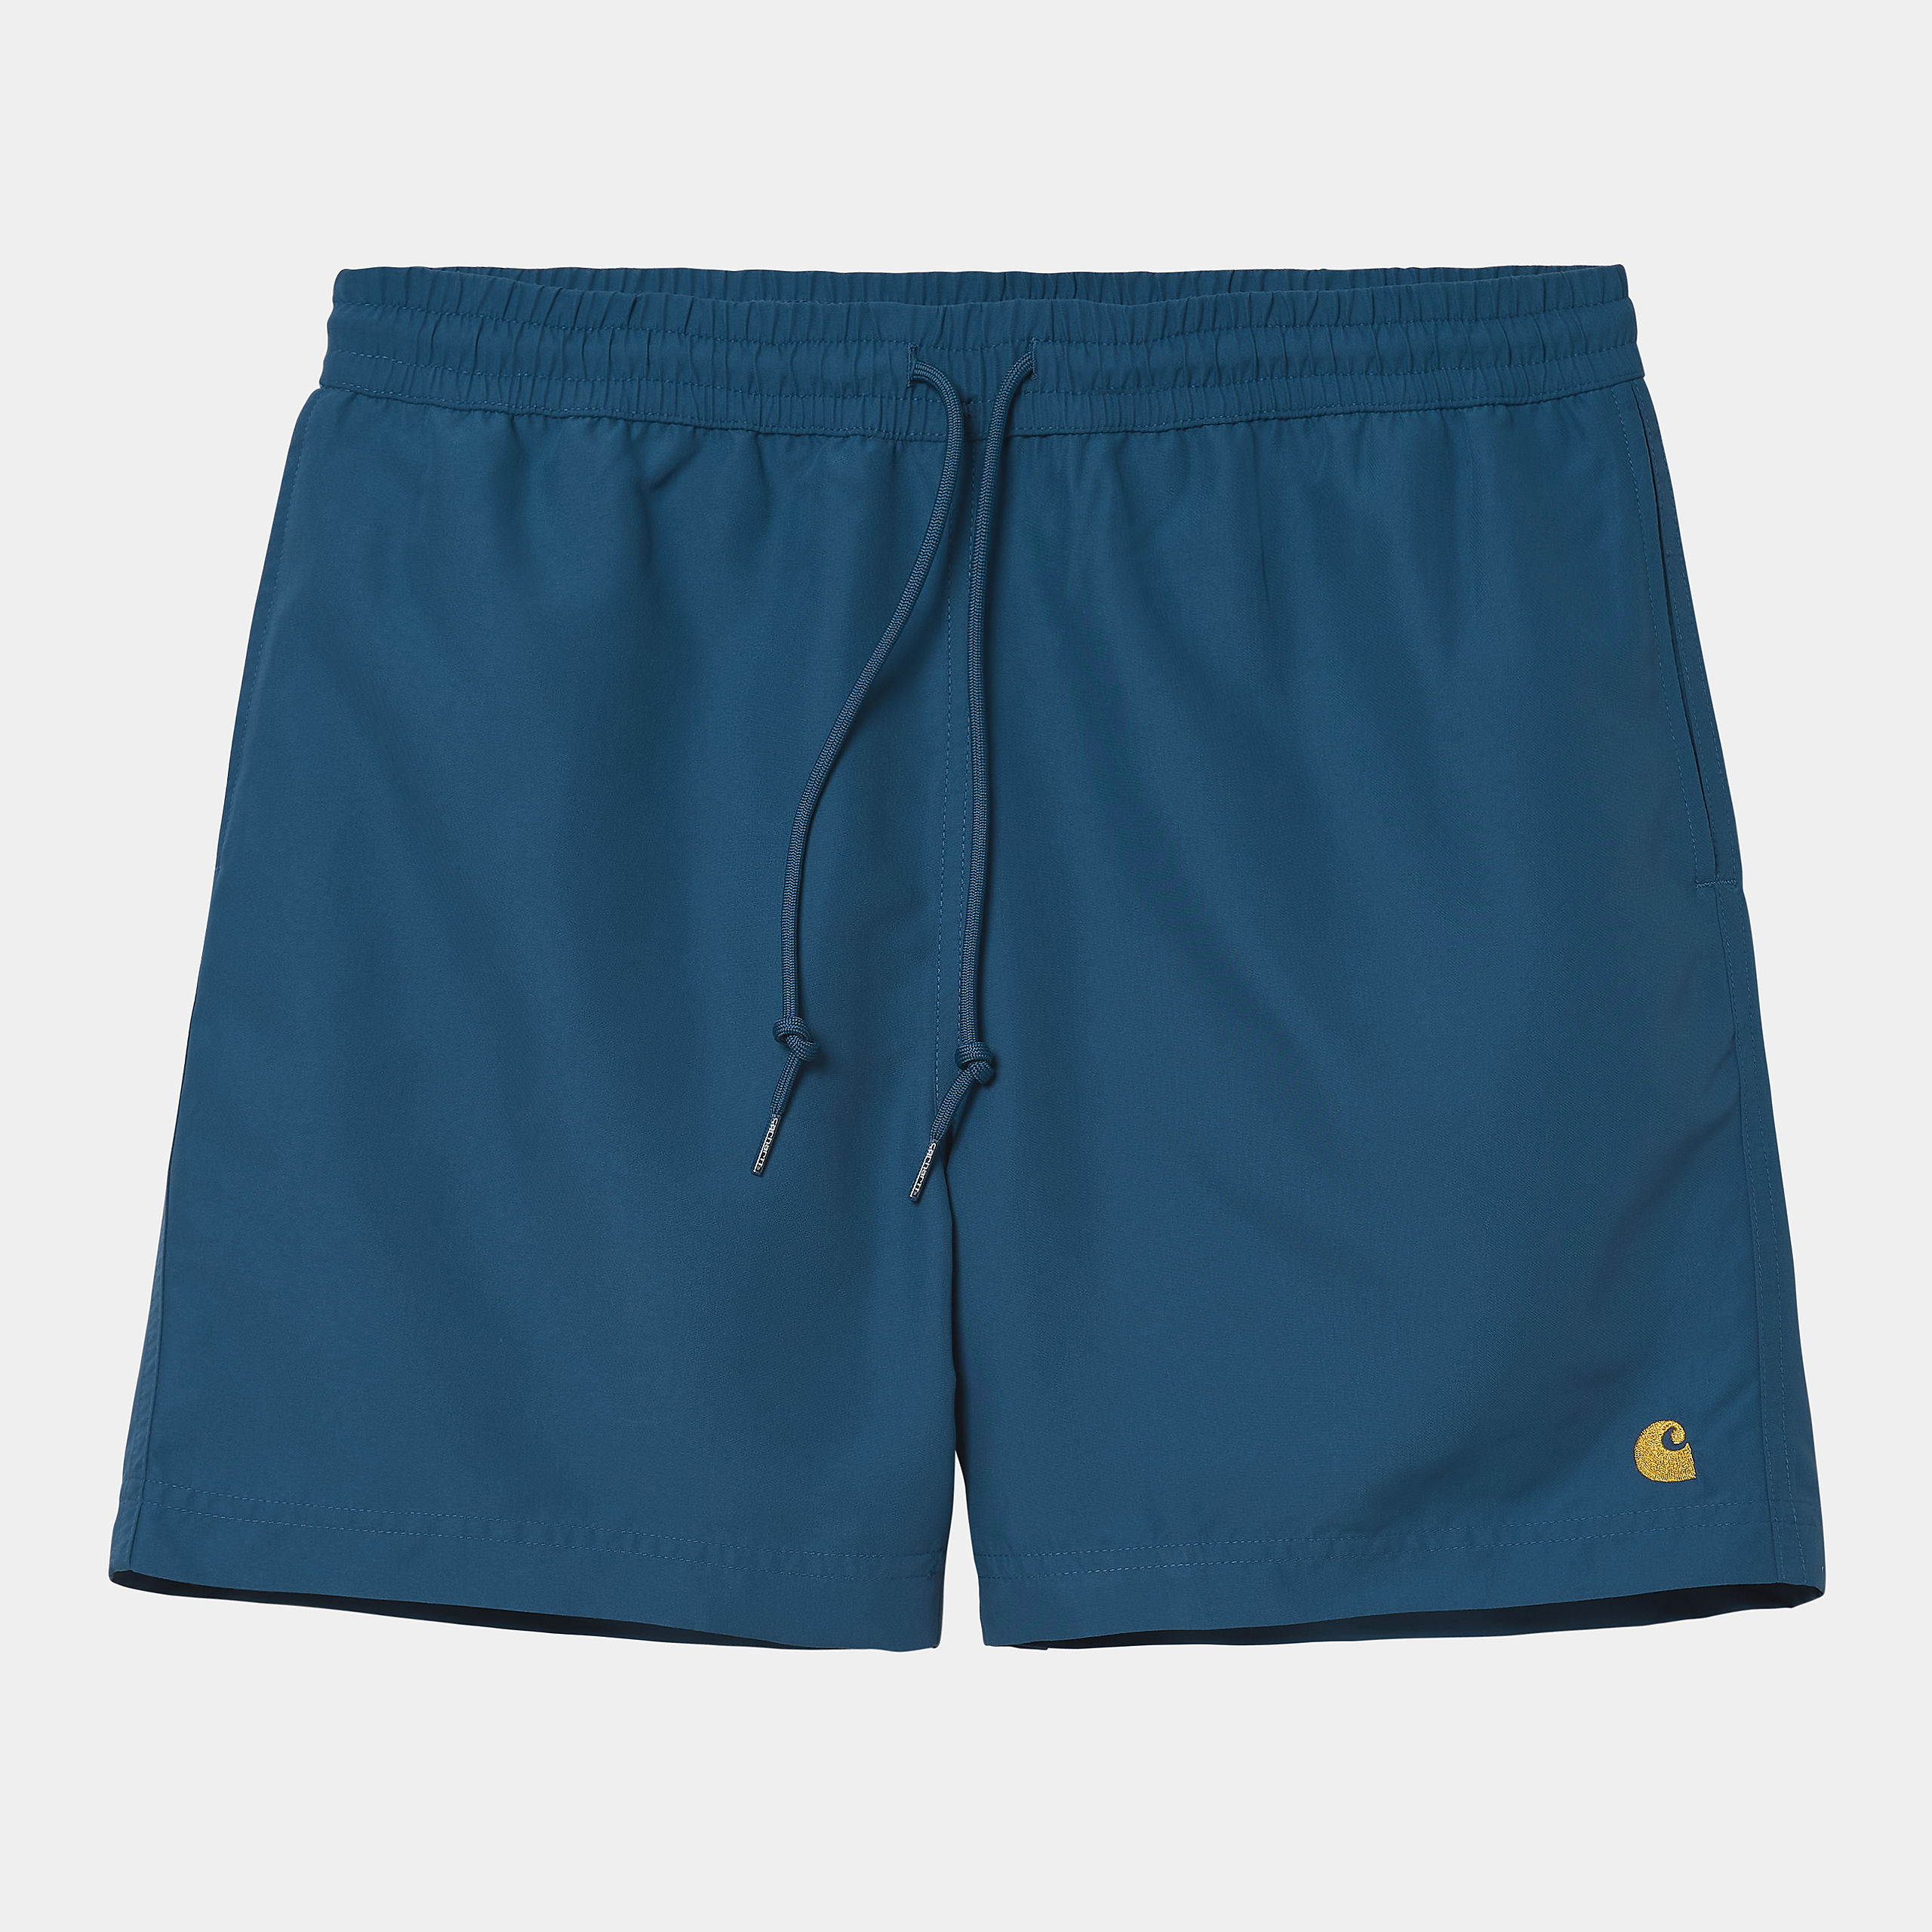 carhartt-chase-swim-trunk-shore-front